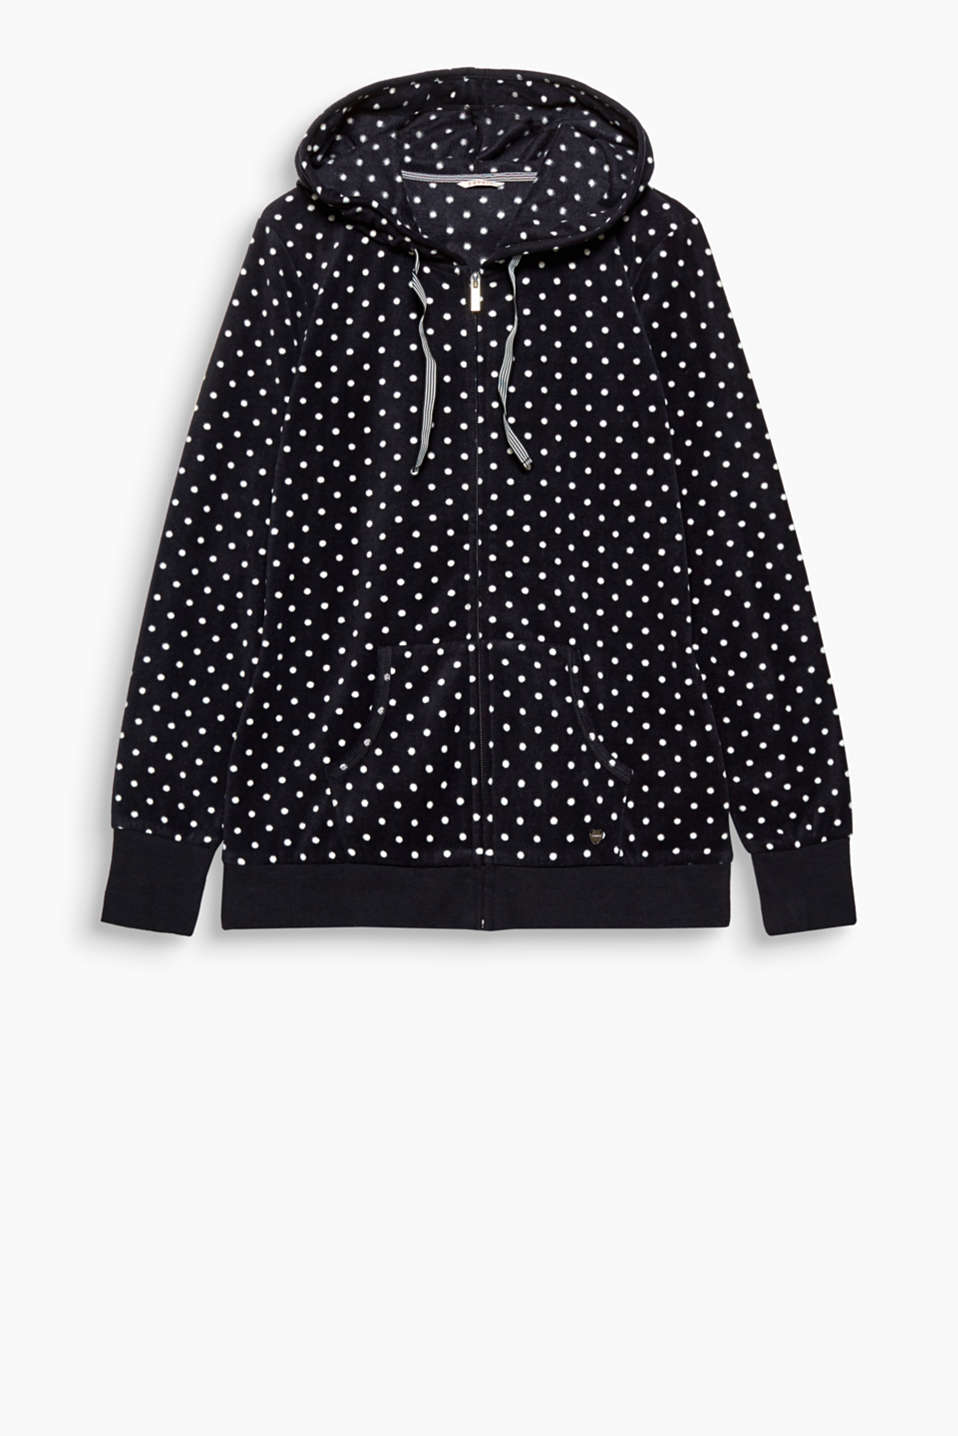 Twice as nice: Fleece and polka dots give this hooded wellness cardigan its worn comfy character!